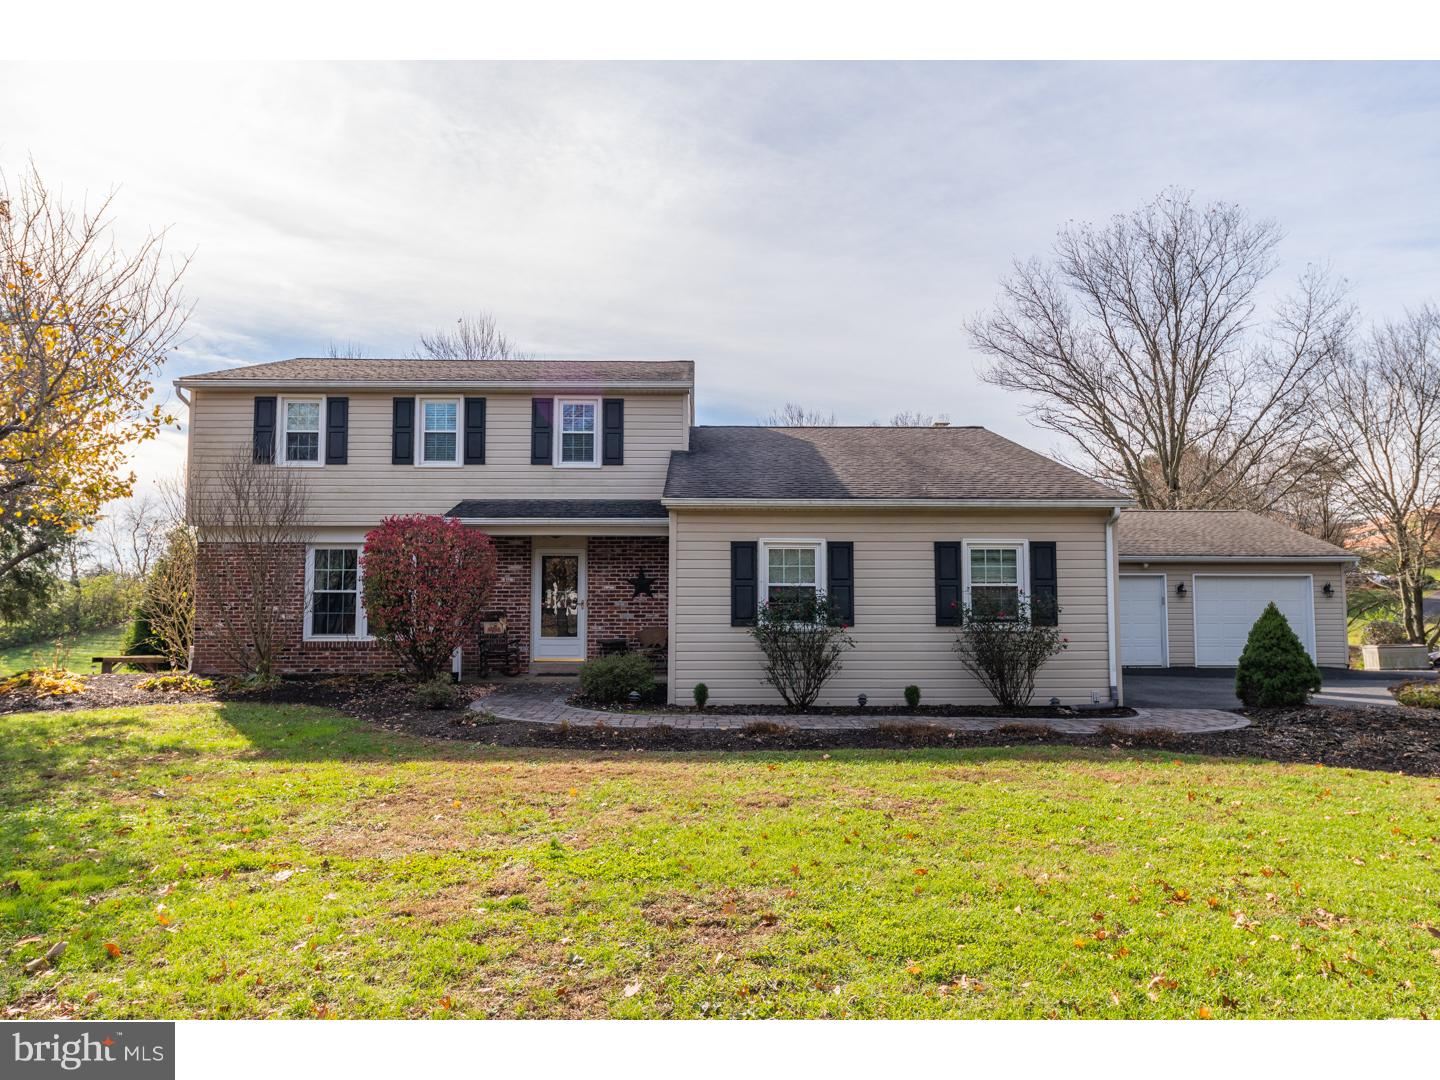 551 DELP ROAD, SOUDERTON, PA 18964